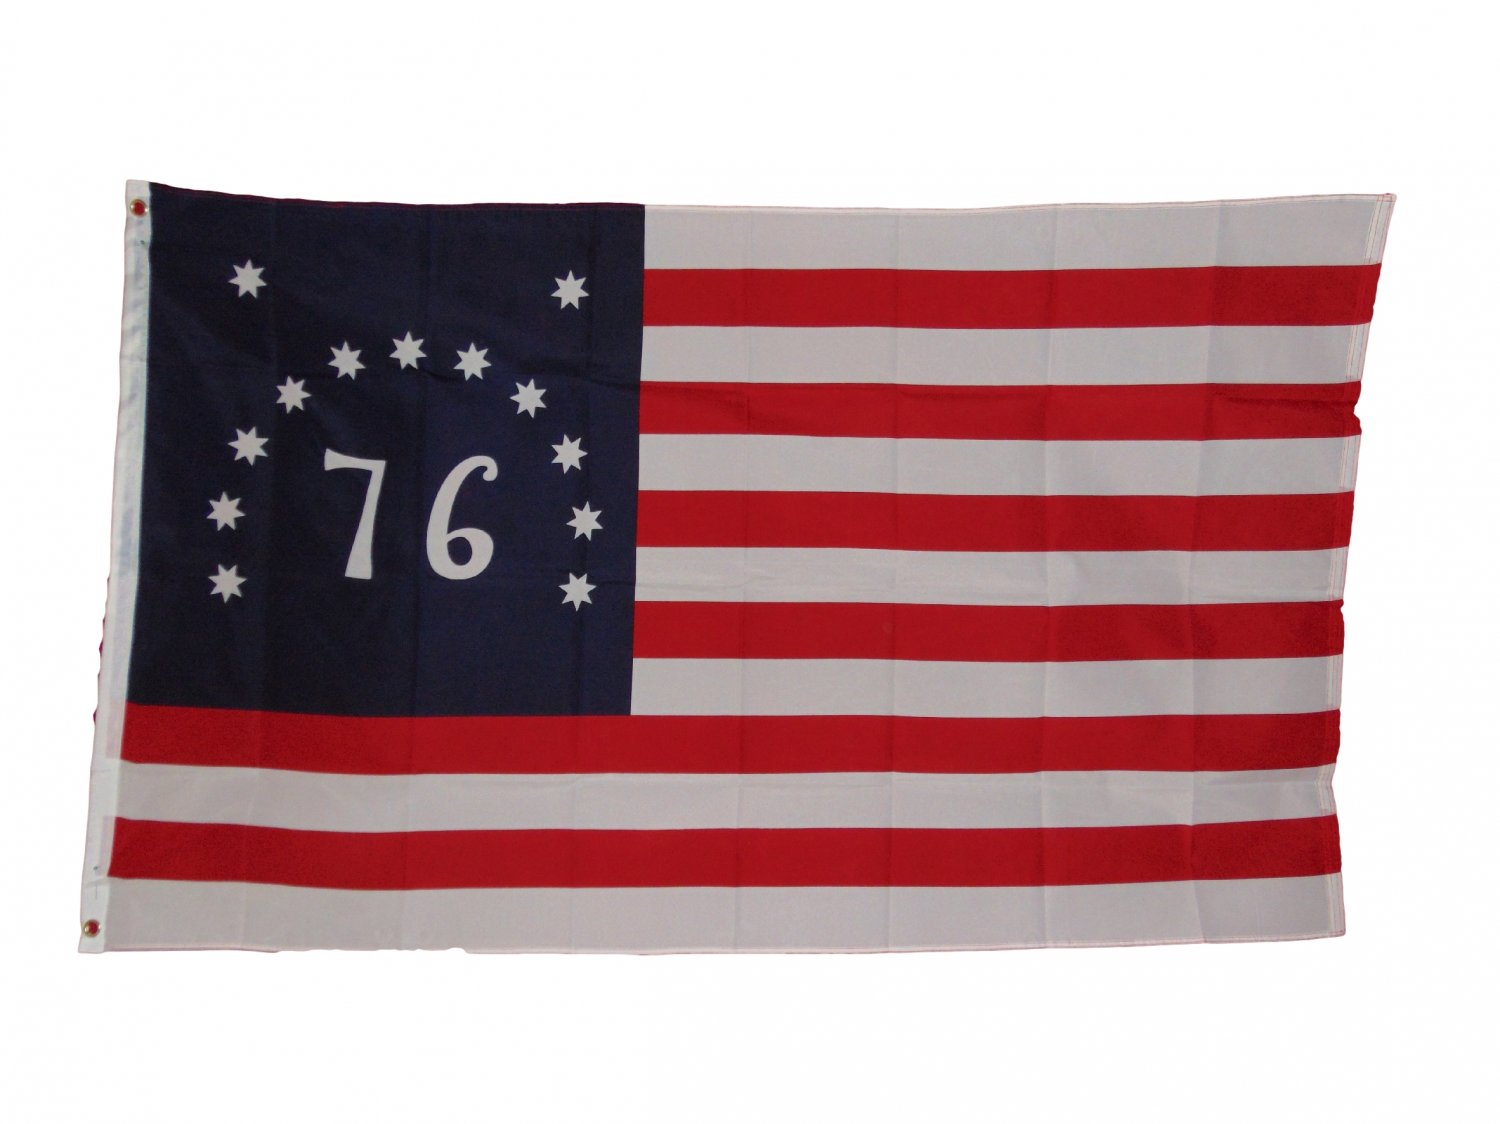 1776 BENNINGTON US FLAG 3X5 FEET 3X5 NEW IN PACKAGE